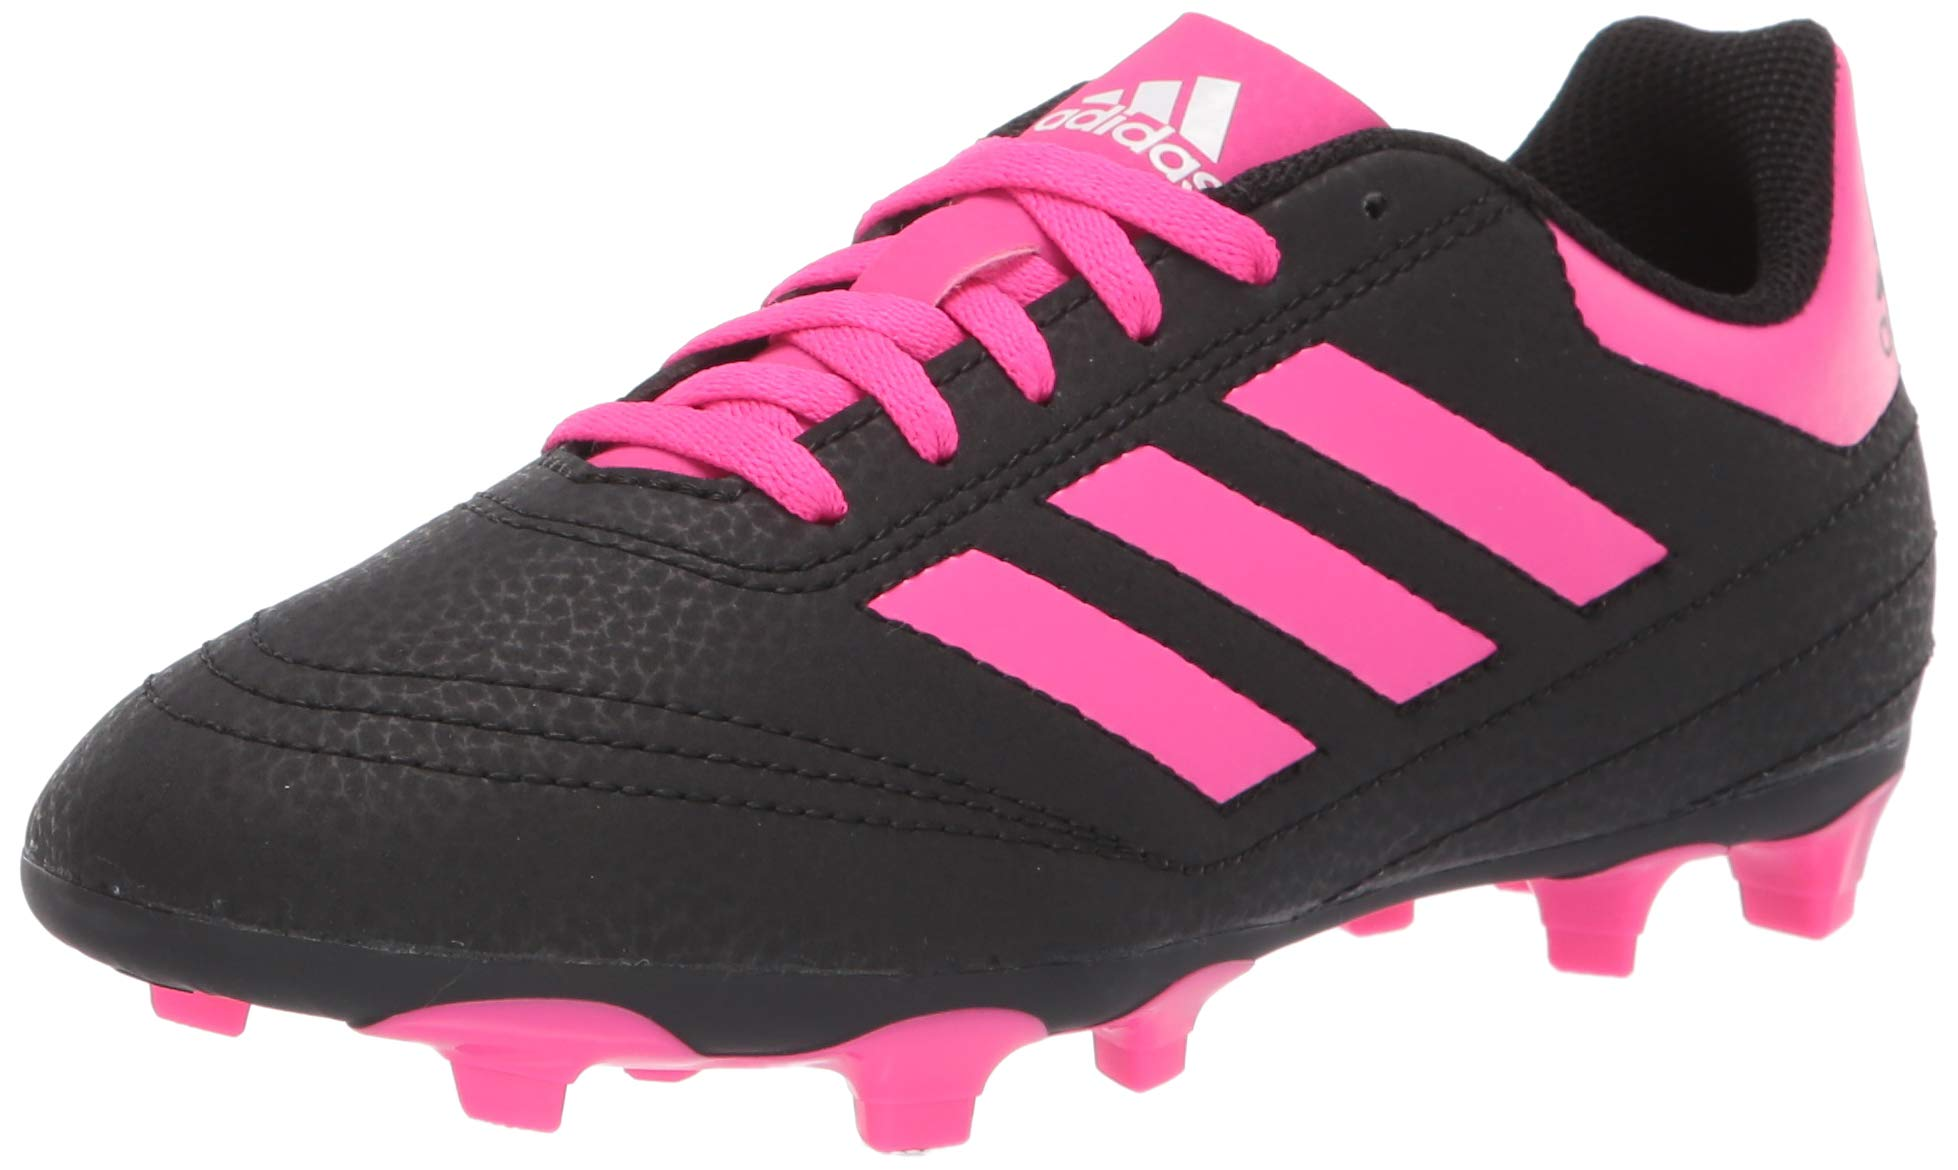 adidas Baby Goletto VI Firm Ground, Black/Shock Pink/White, 10K M US Toddler